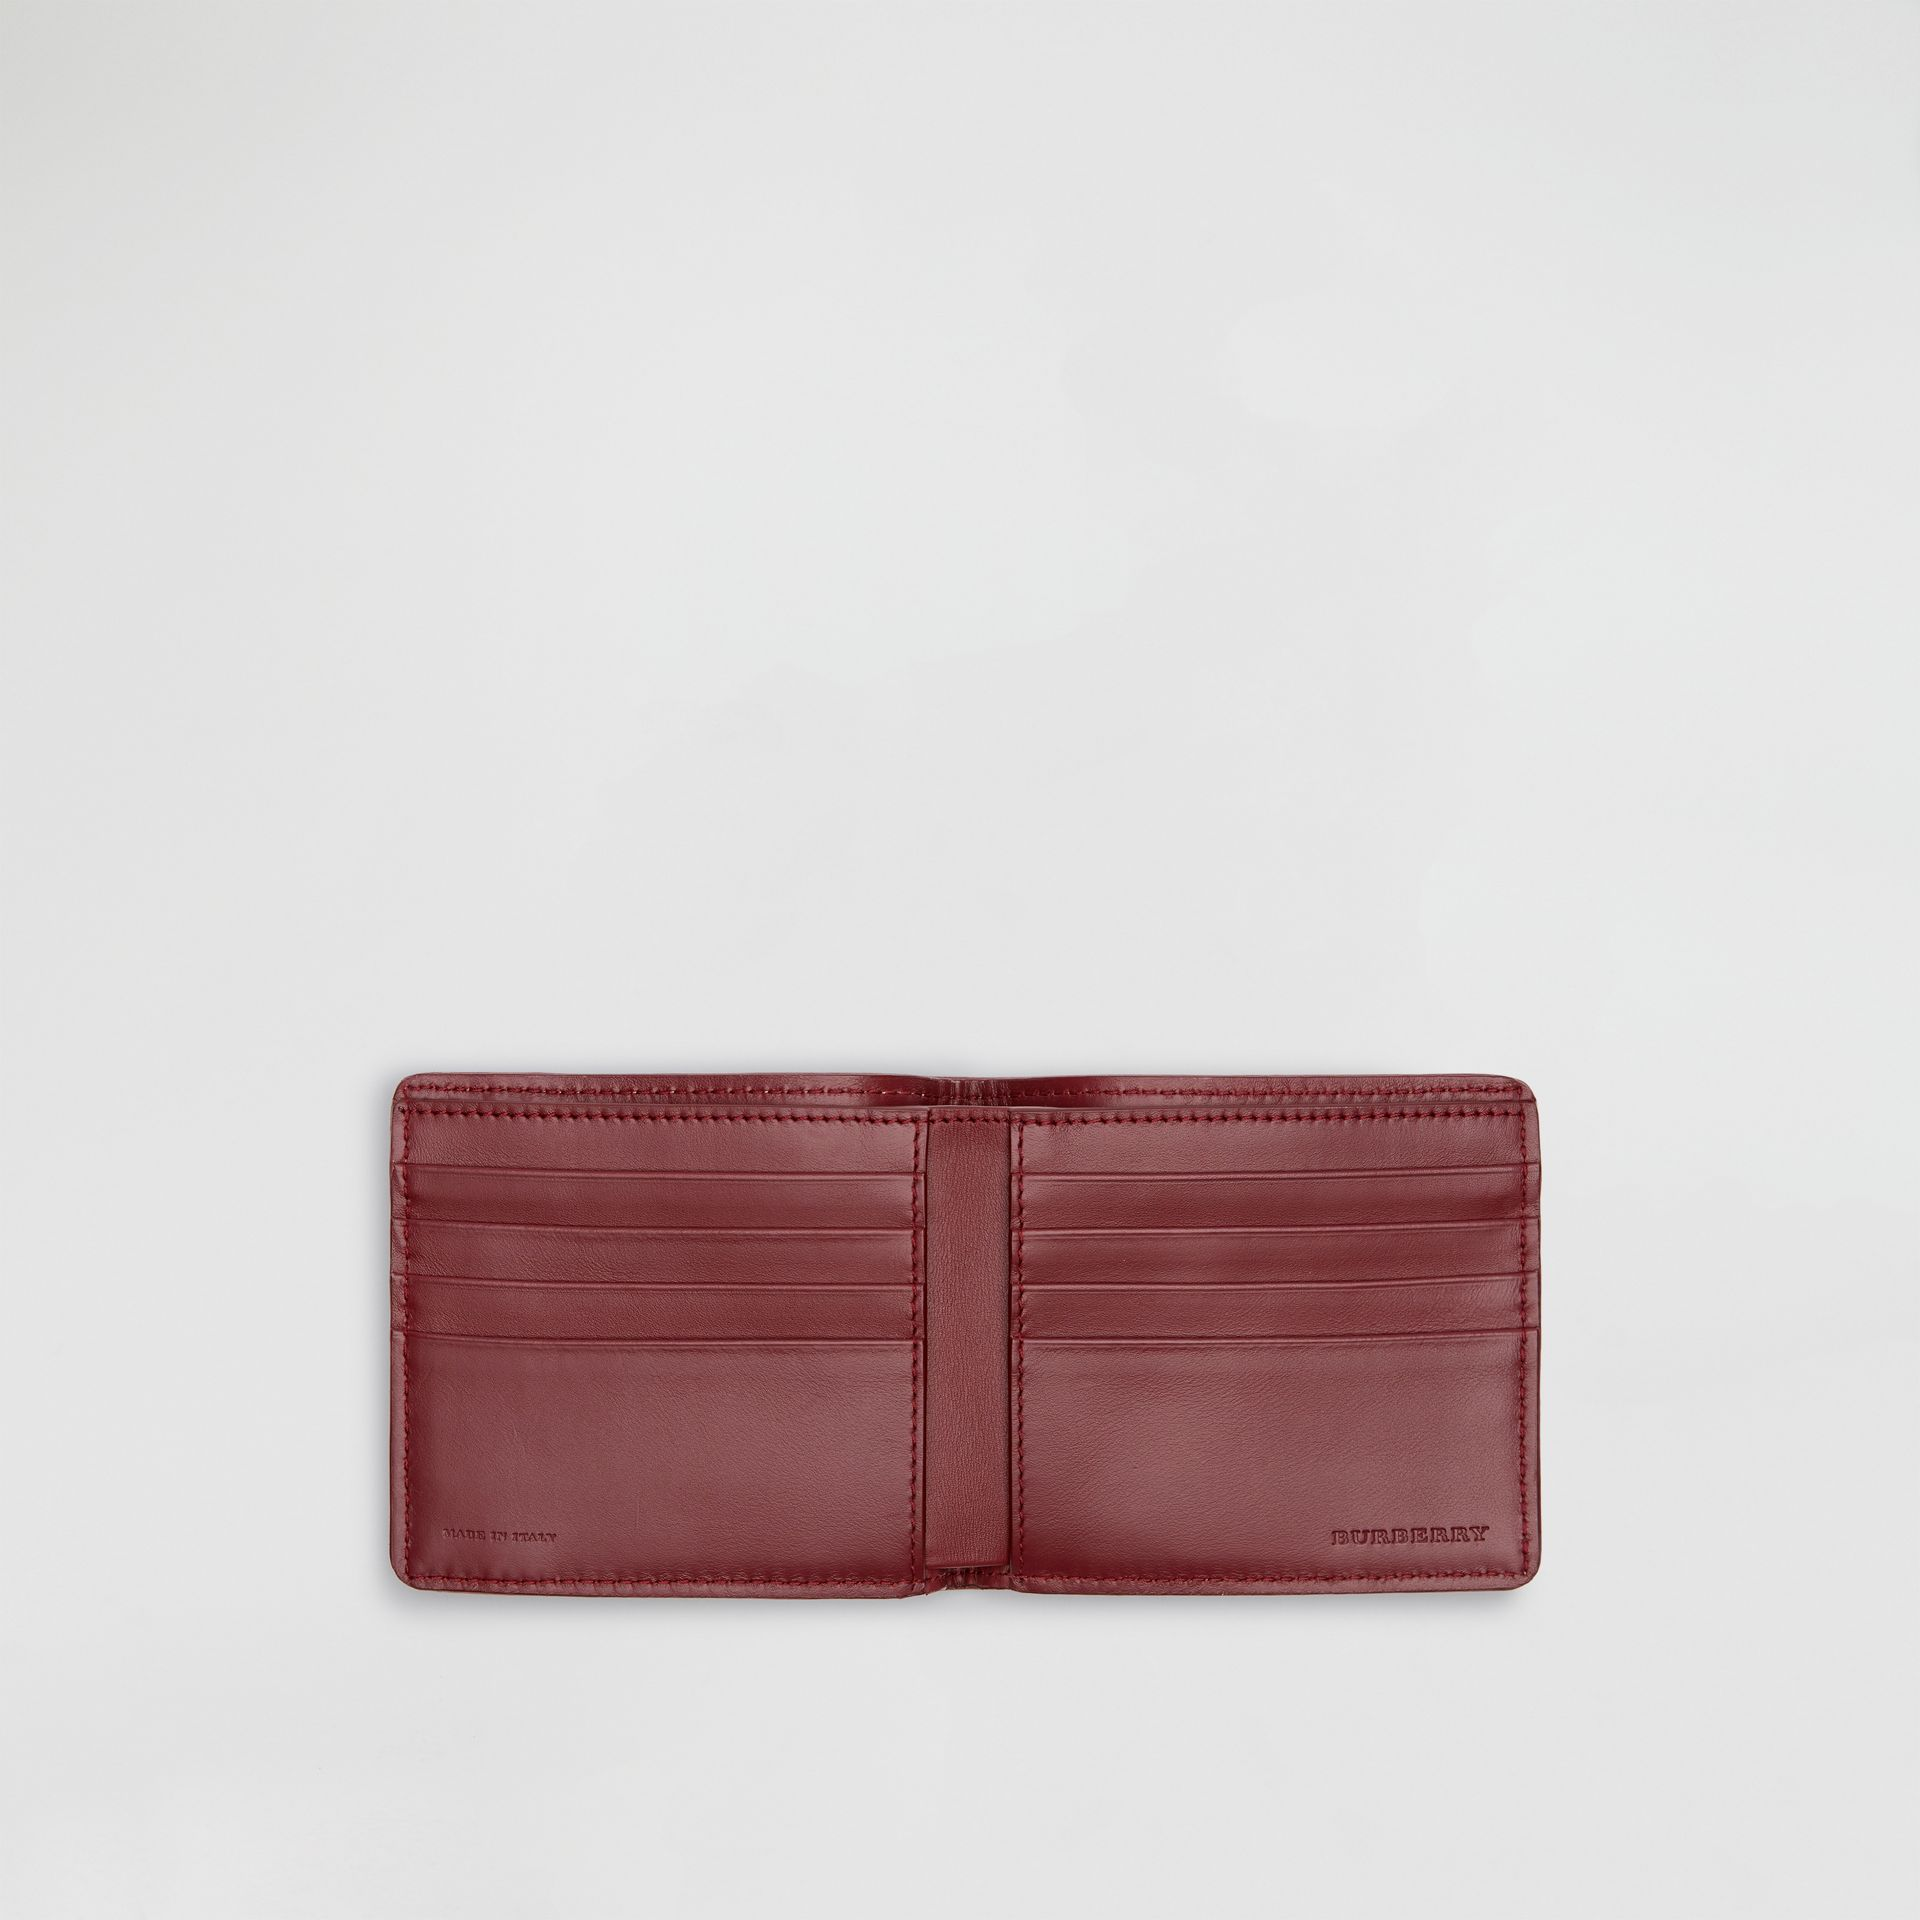 1983 Check and Leather International Bifold Wallet in Antique Red - Men | Burberry Australia - gallery image 3